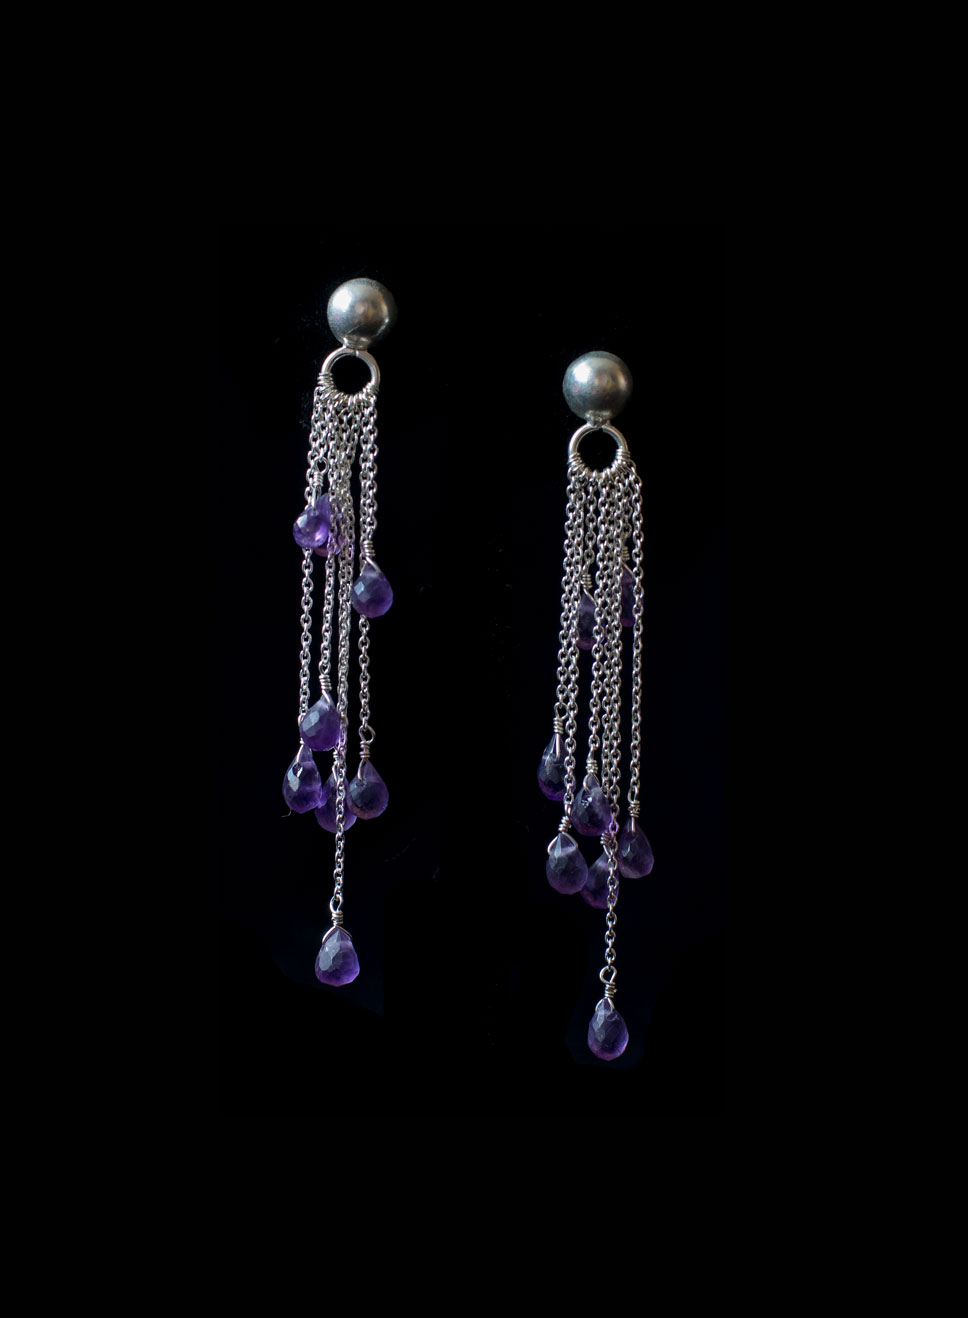 Multi-chain with stud & amethyst drops. Silver & silver gold plate. Stones aqua marine, smoky quartz or tourmaline.  Earring length-7.5cm.